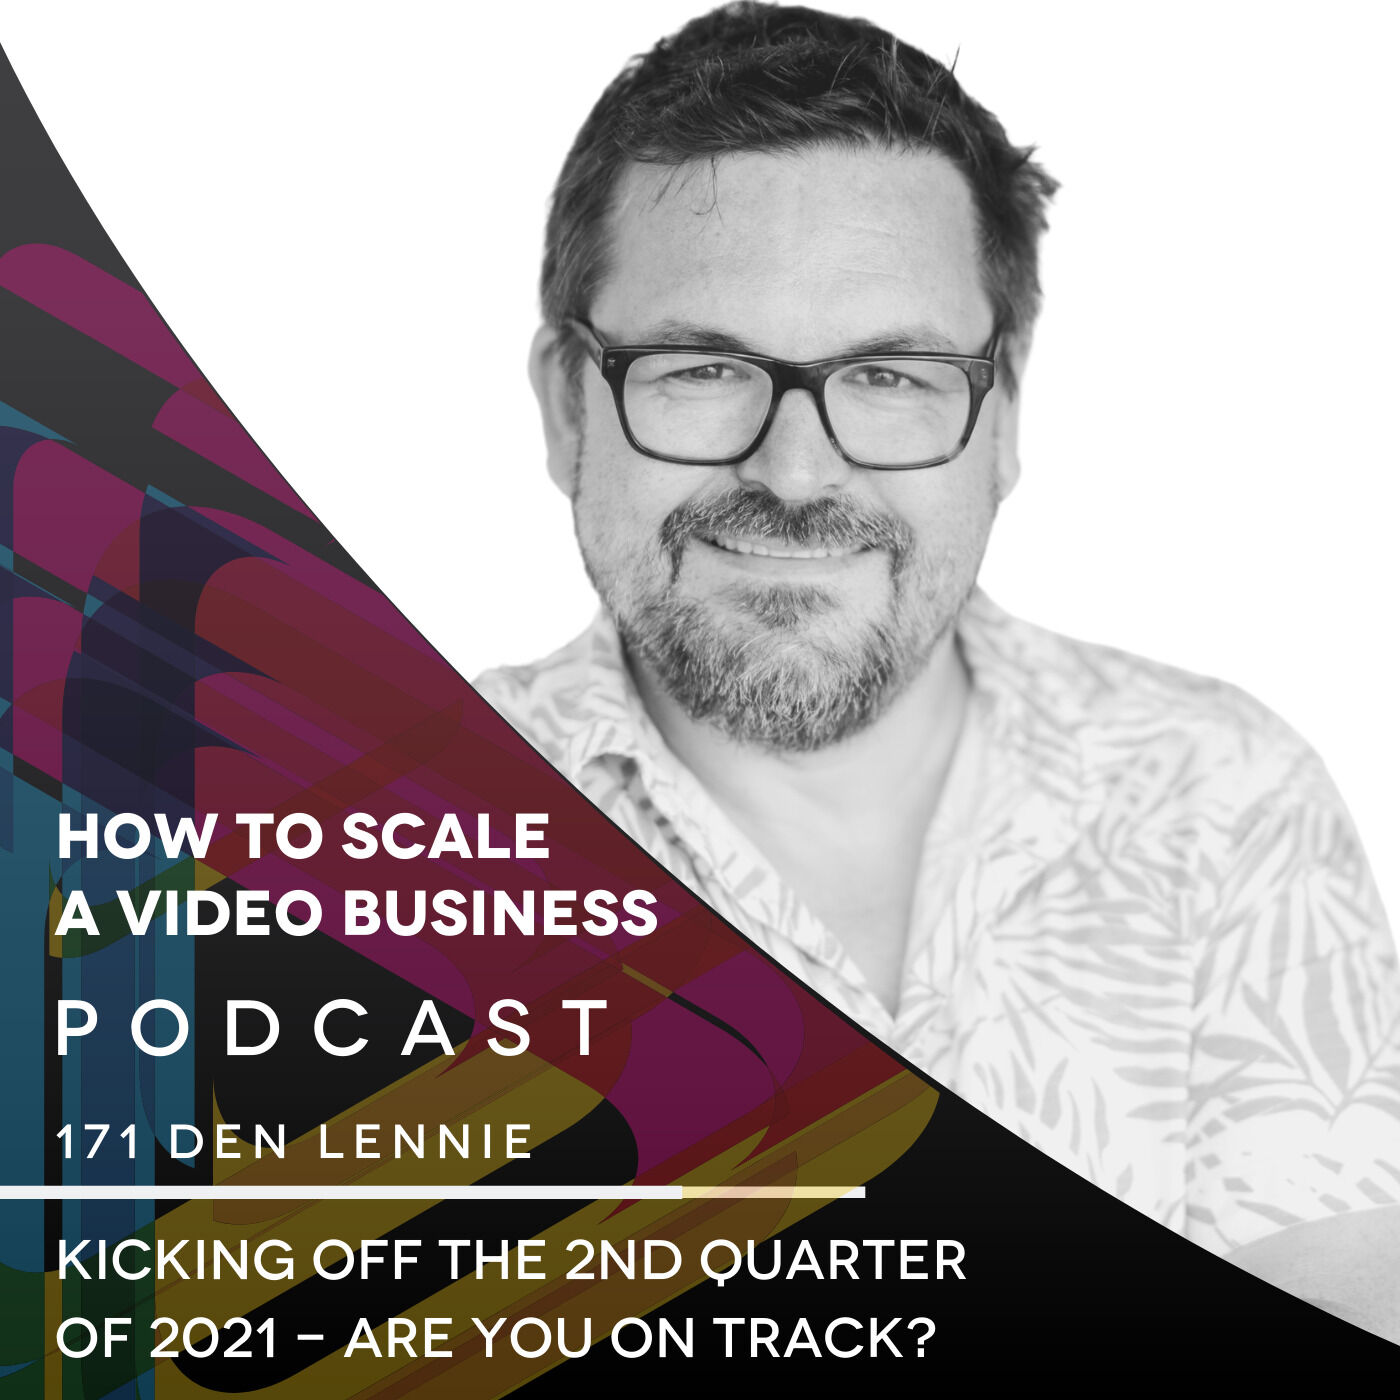 Kicking off the 2nd quarter of 2021 - Are you on track? EP #171 - Shorty